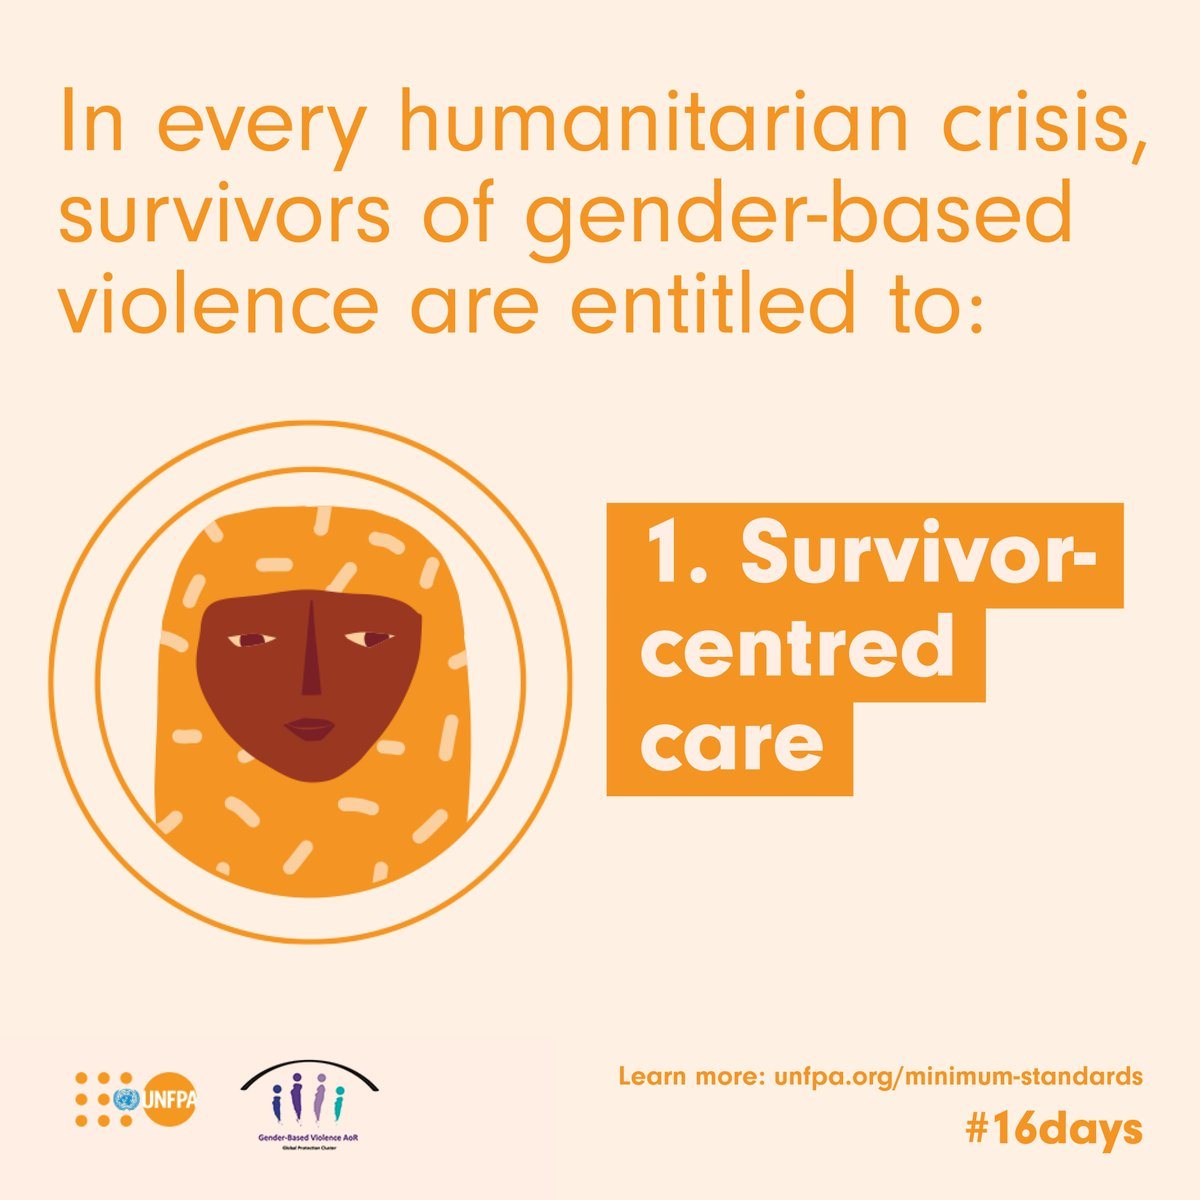 Survivor-centred care means services are safe, confidential, non-discriminatory and respectful. During the #16Days of Activism, see the 16 minimum standards of care that must be met to assist survivors of gender-based violence in emergencies: unf.pa/ms #ENDviolence